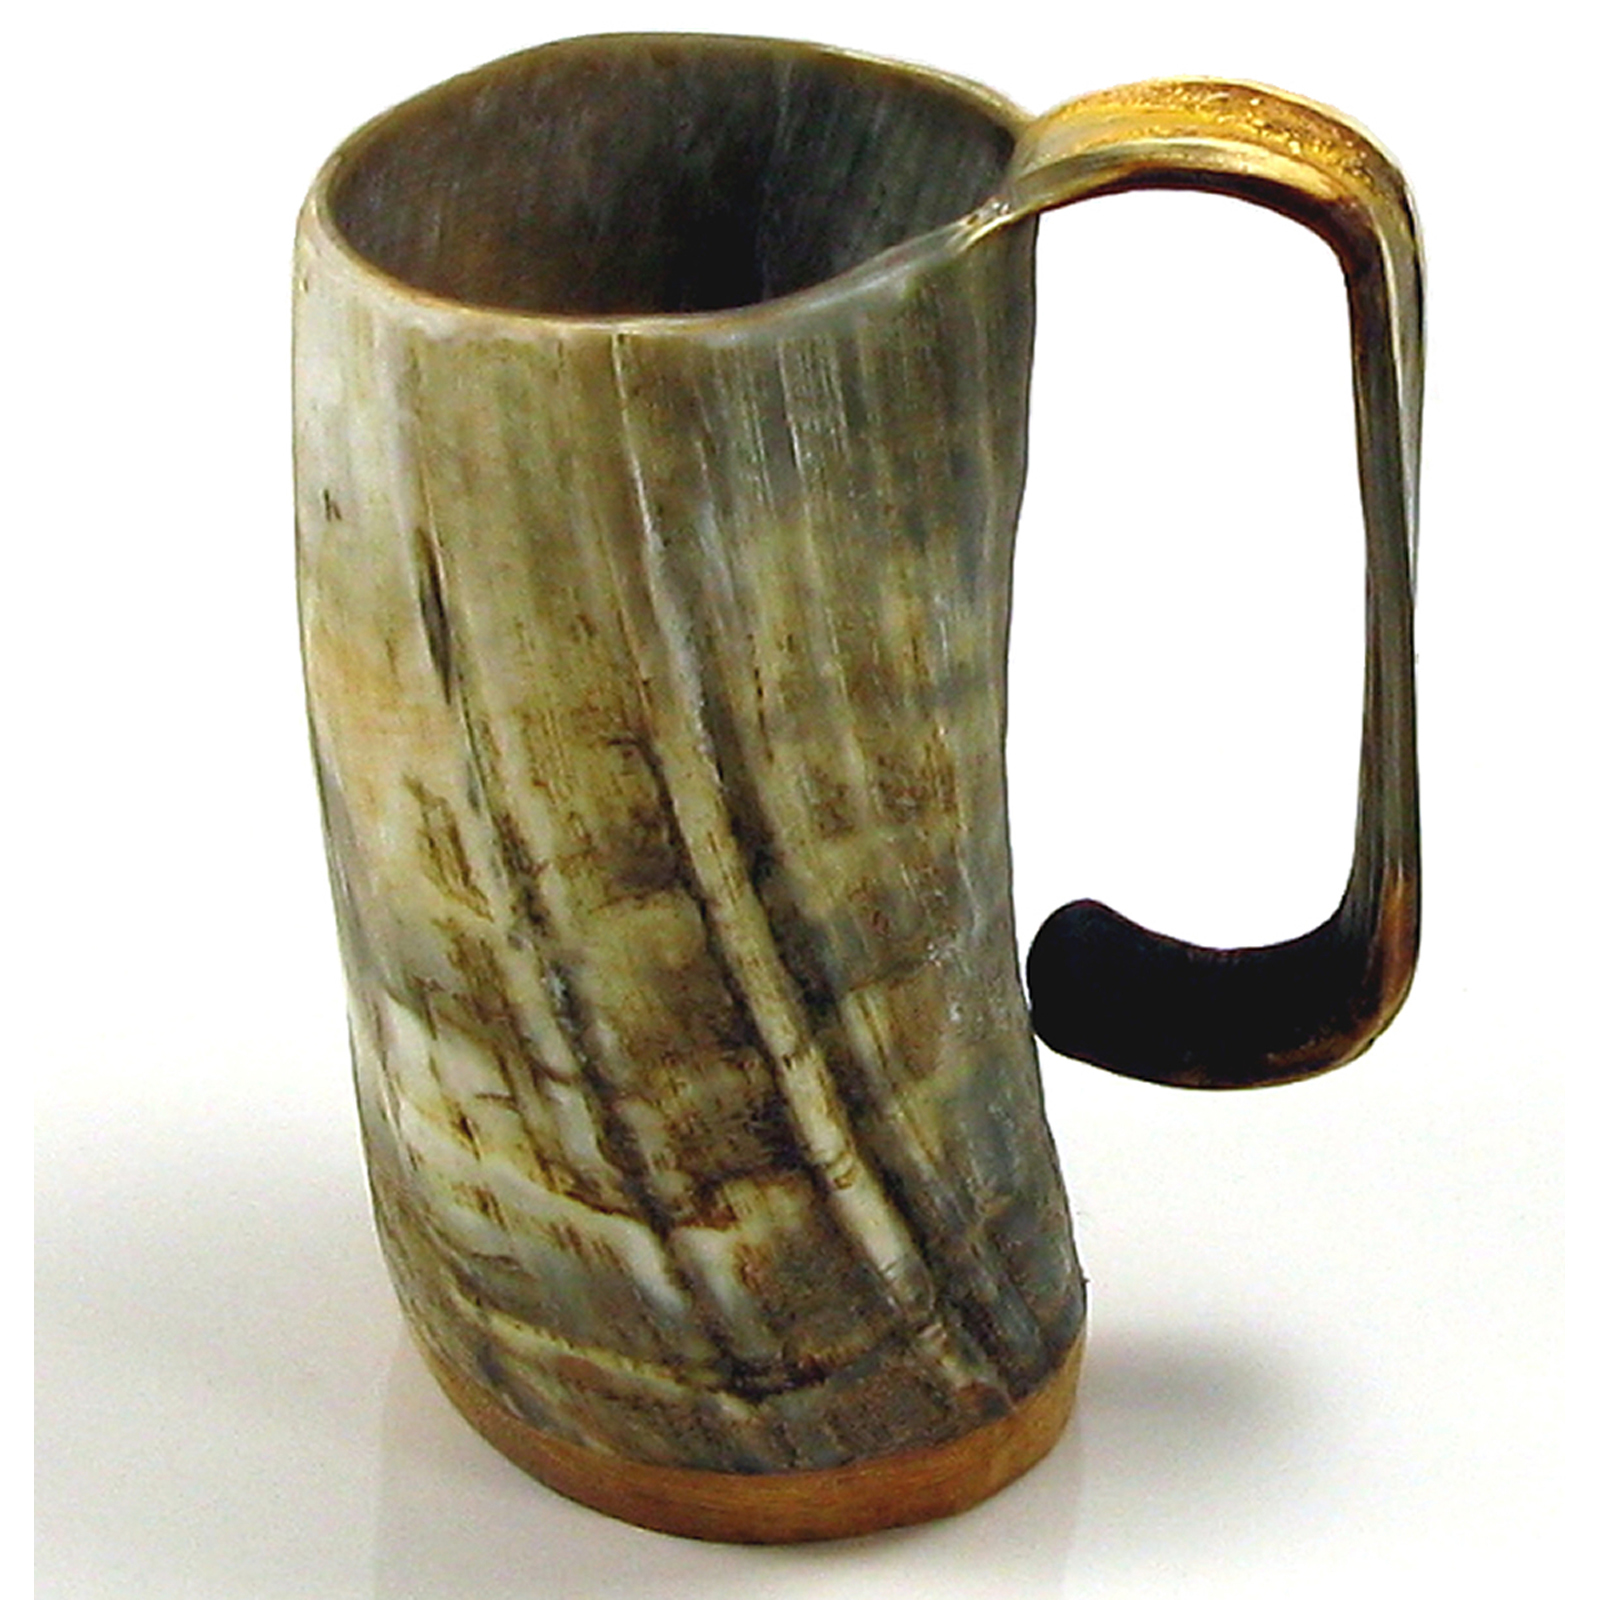 Game of Thrones Soldiers Mead Mug or Tankard  - Unpolished Ox Horn Approx 1 pint